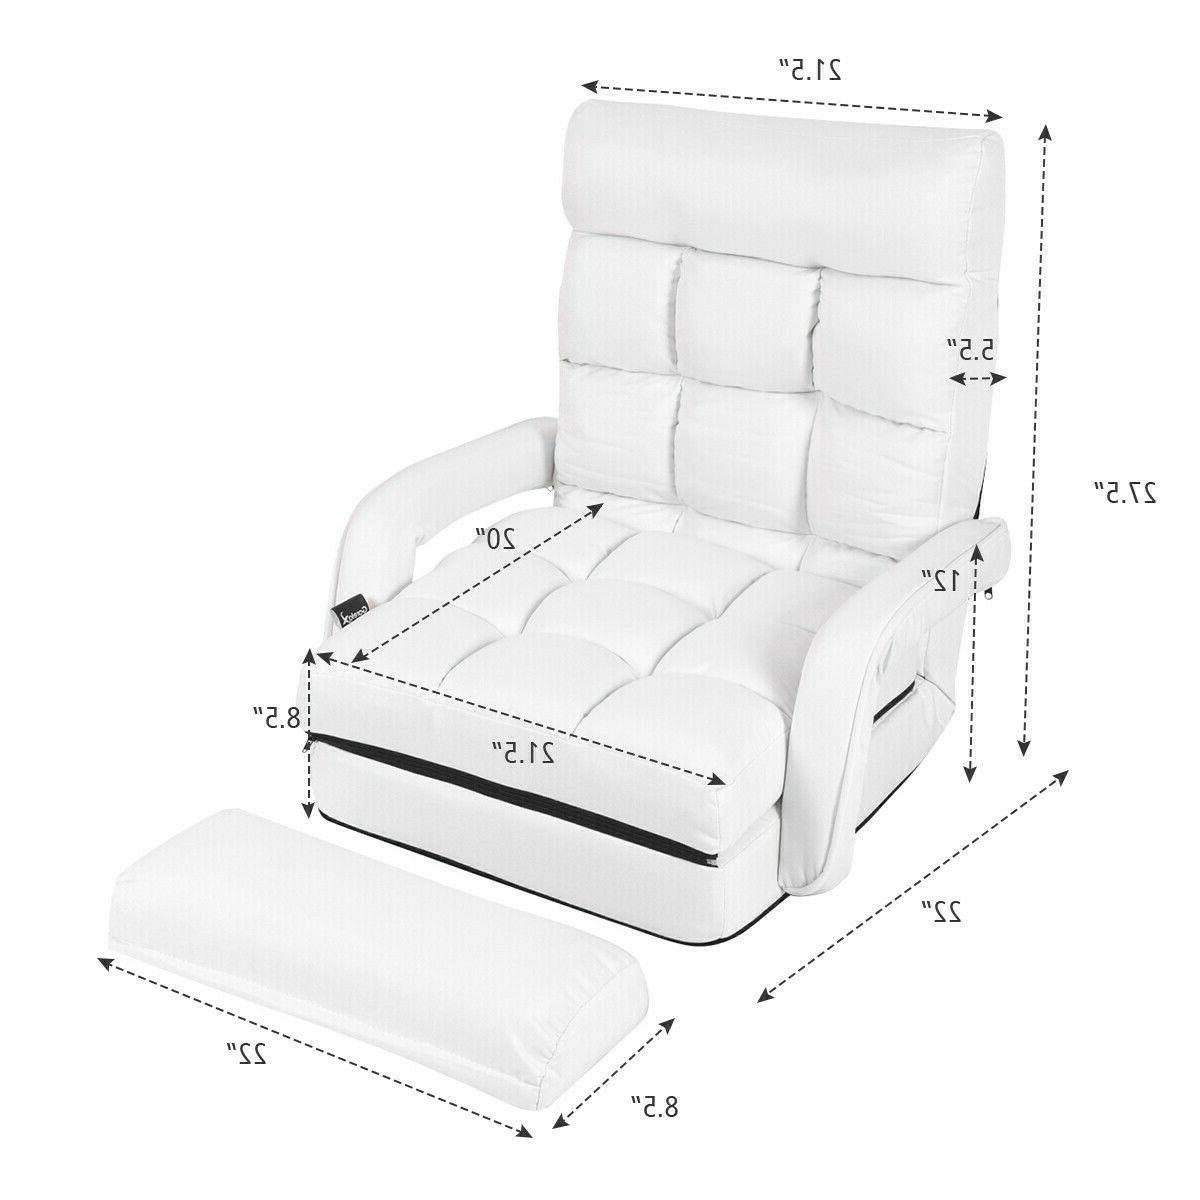 Floor Bed With Massage Pillow Recliner Sofa Foldable Couch New